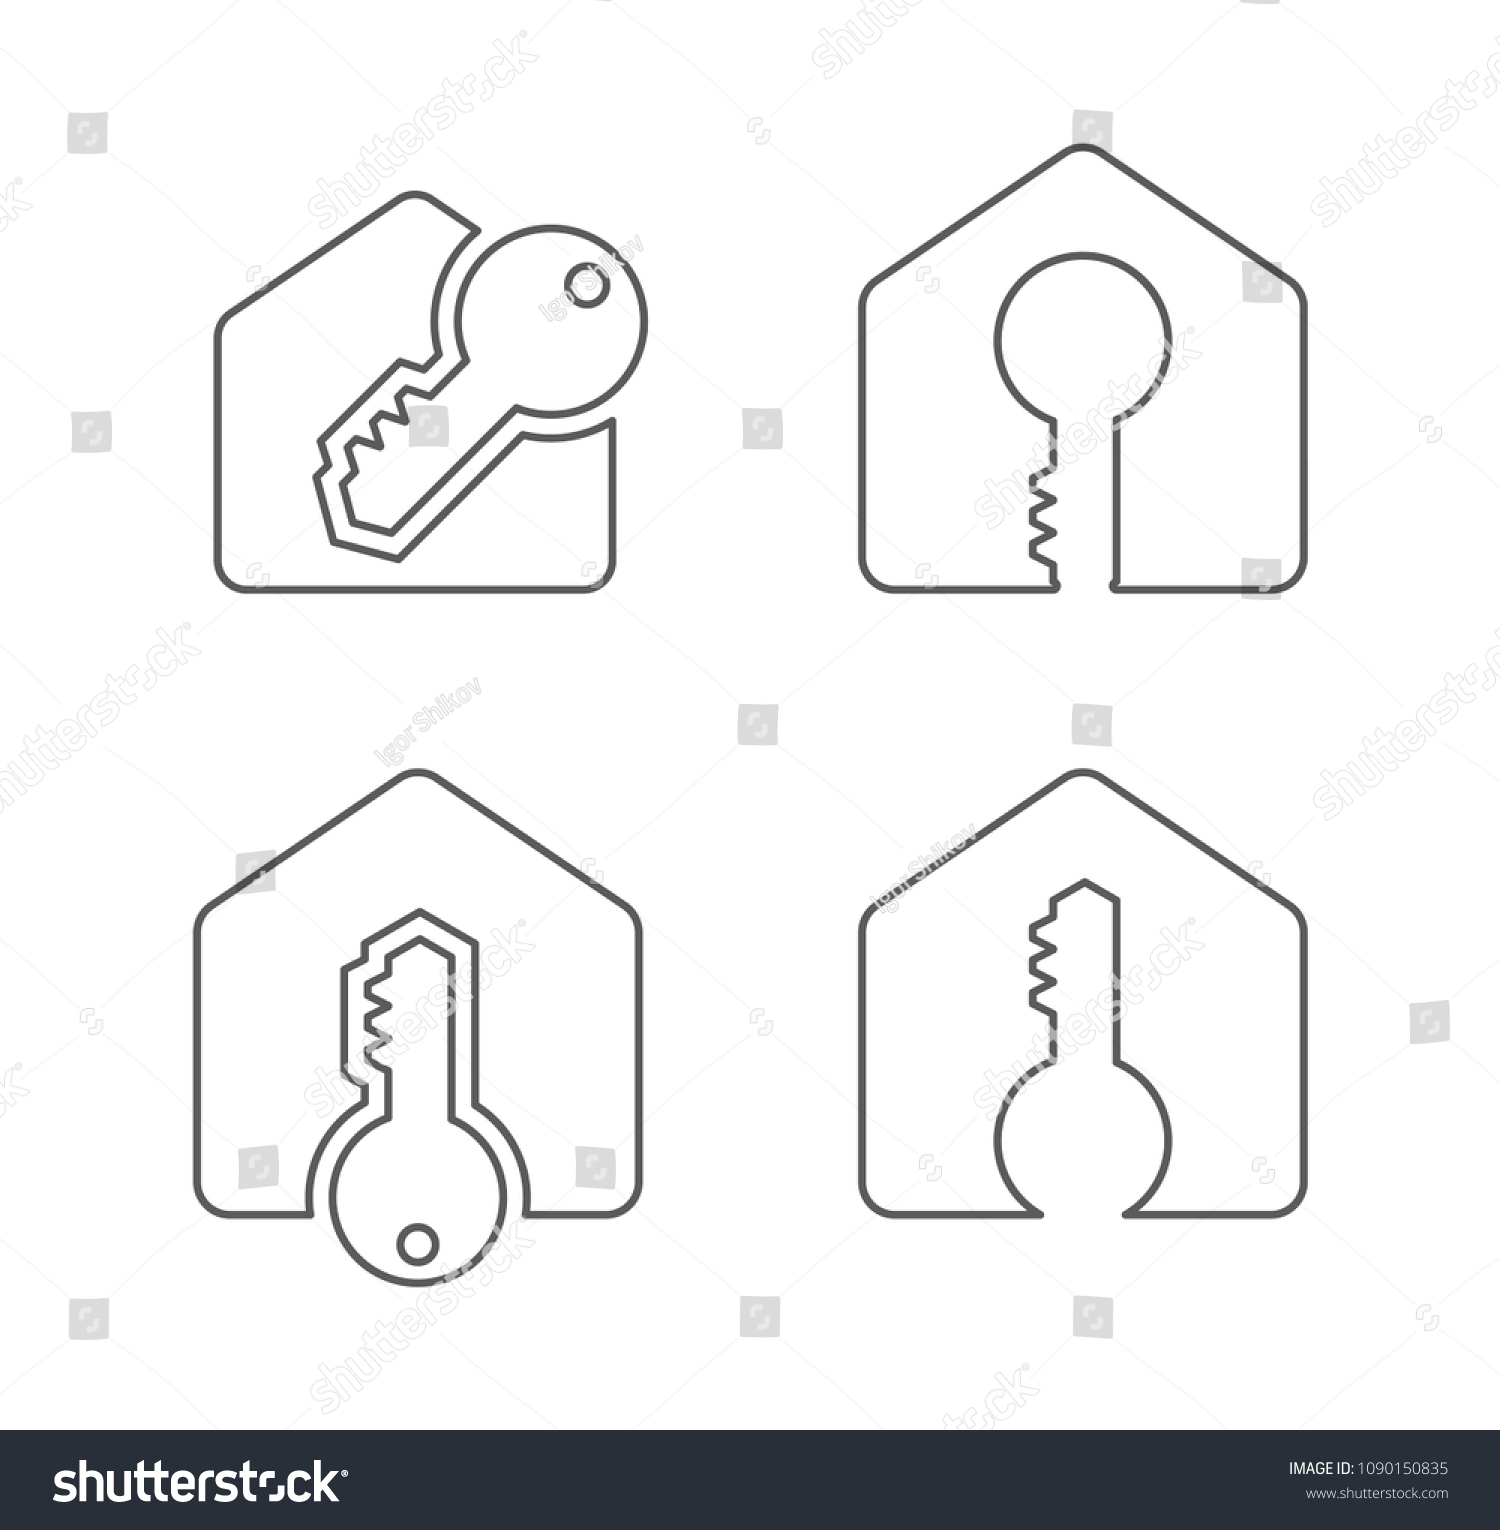 Blinds Vs Curtains89 Garage Door Sensor Wiring Diagram Http Wwwjustanswercom Appliance Stock Vector House And Key Outline Icon Logo 1090150835